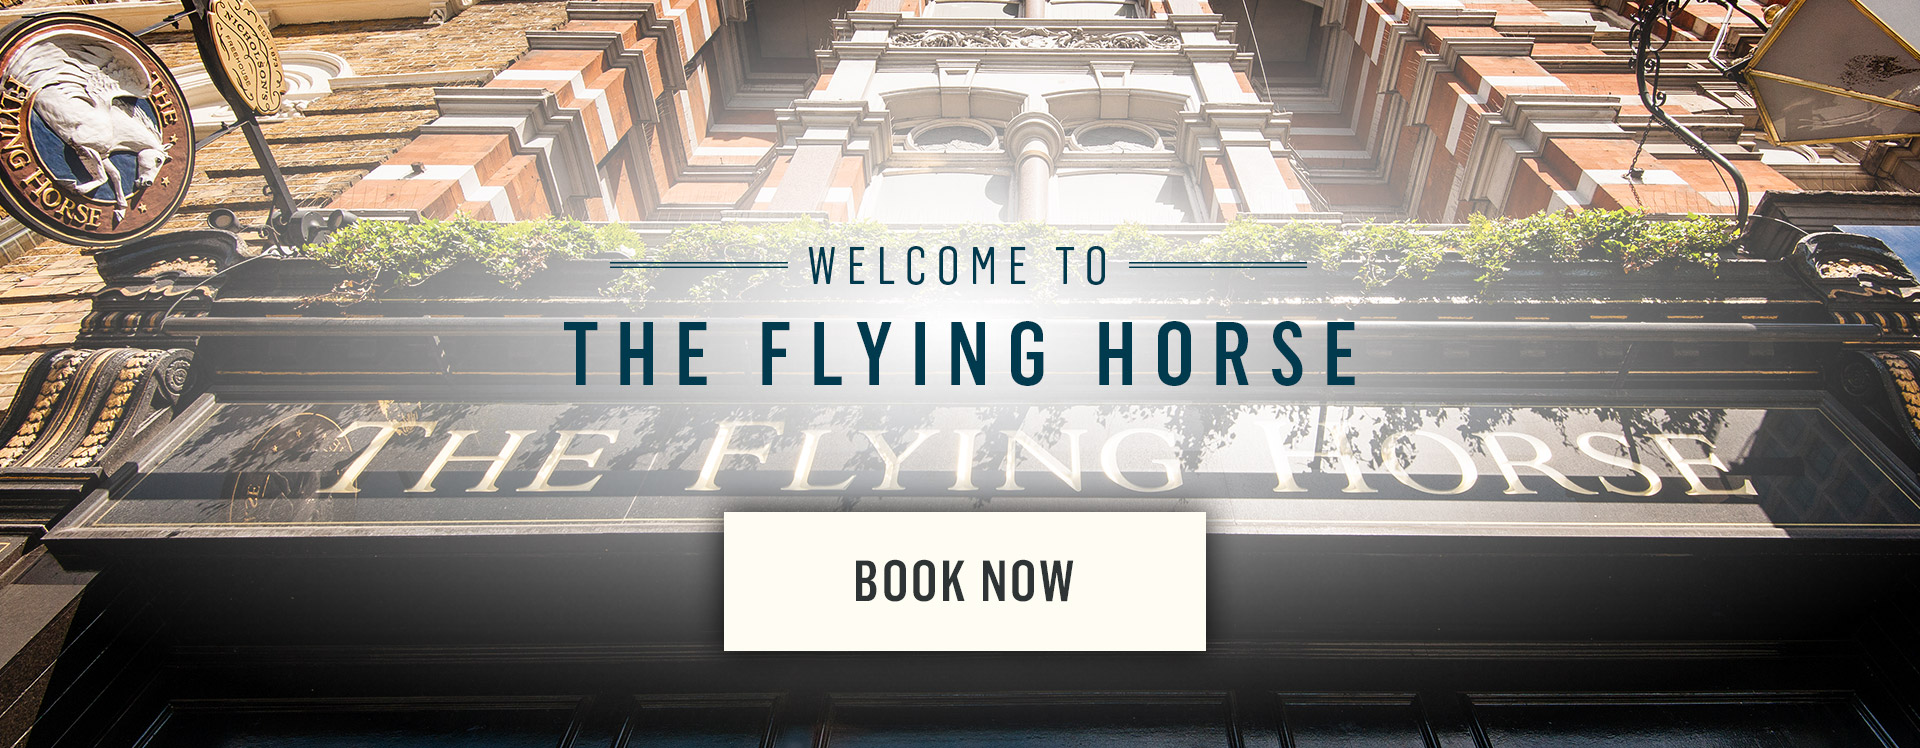 Welcome to Flying Horse - Book Now